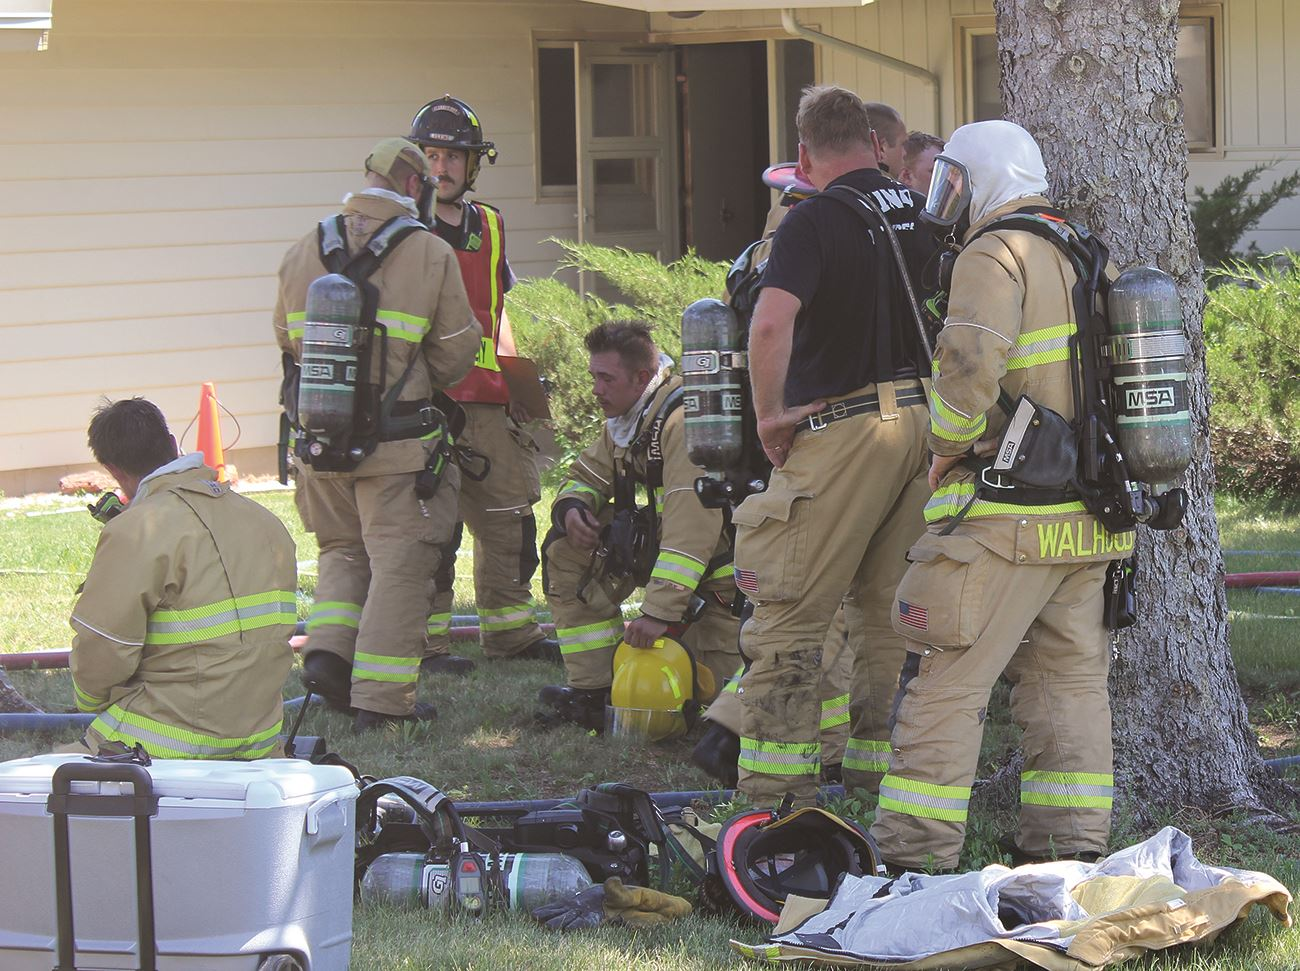 Firefighters recovering in hot weather